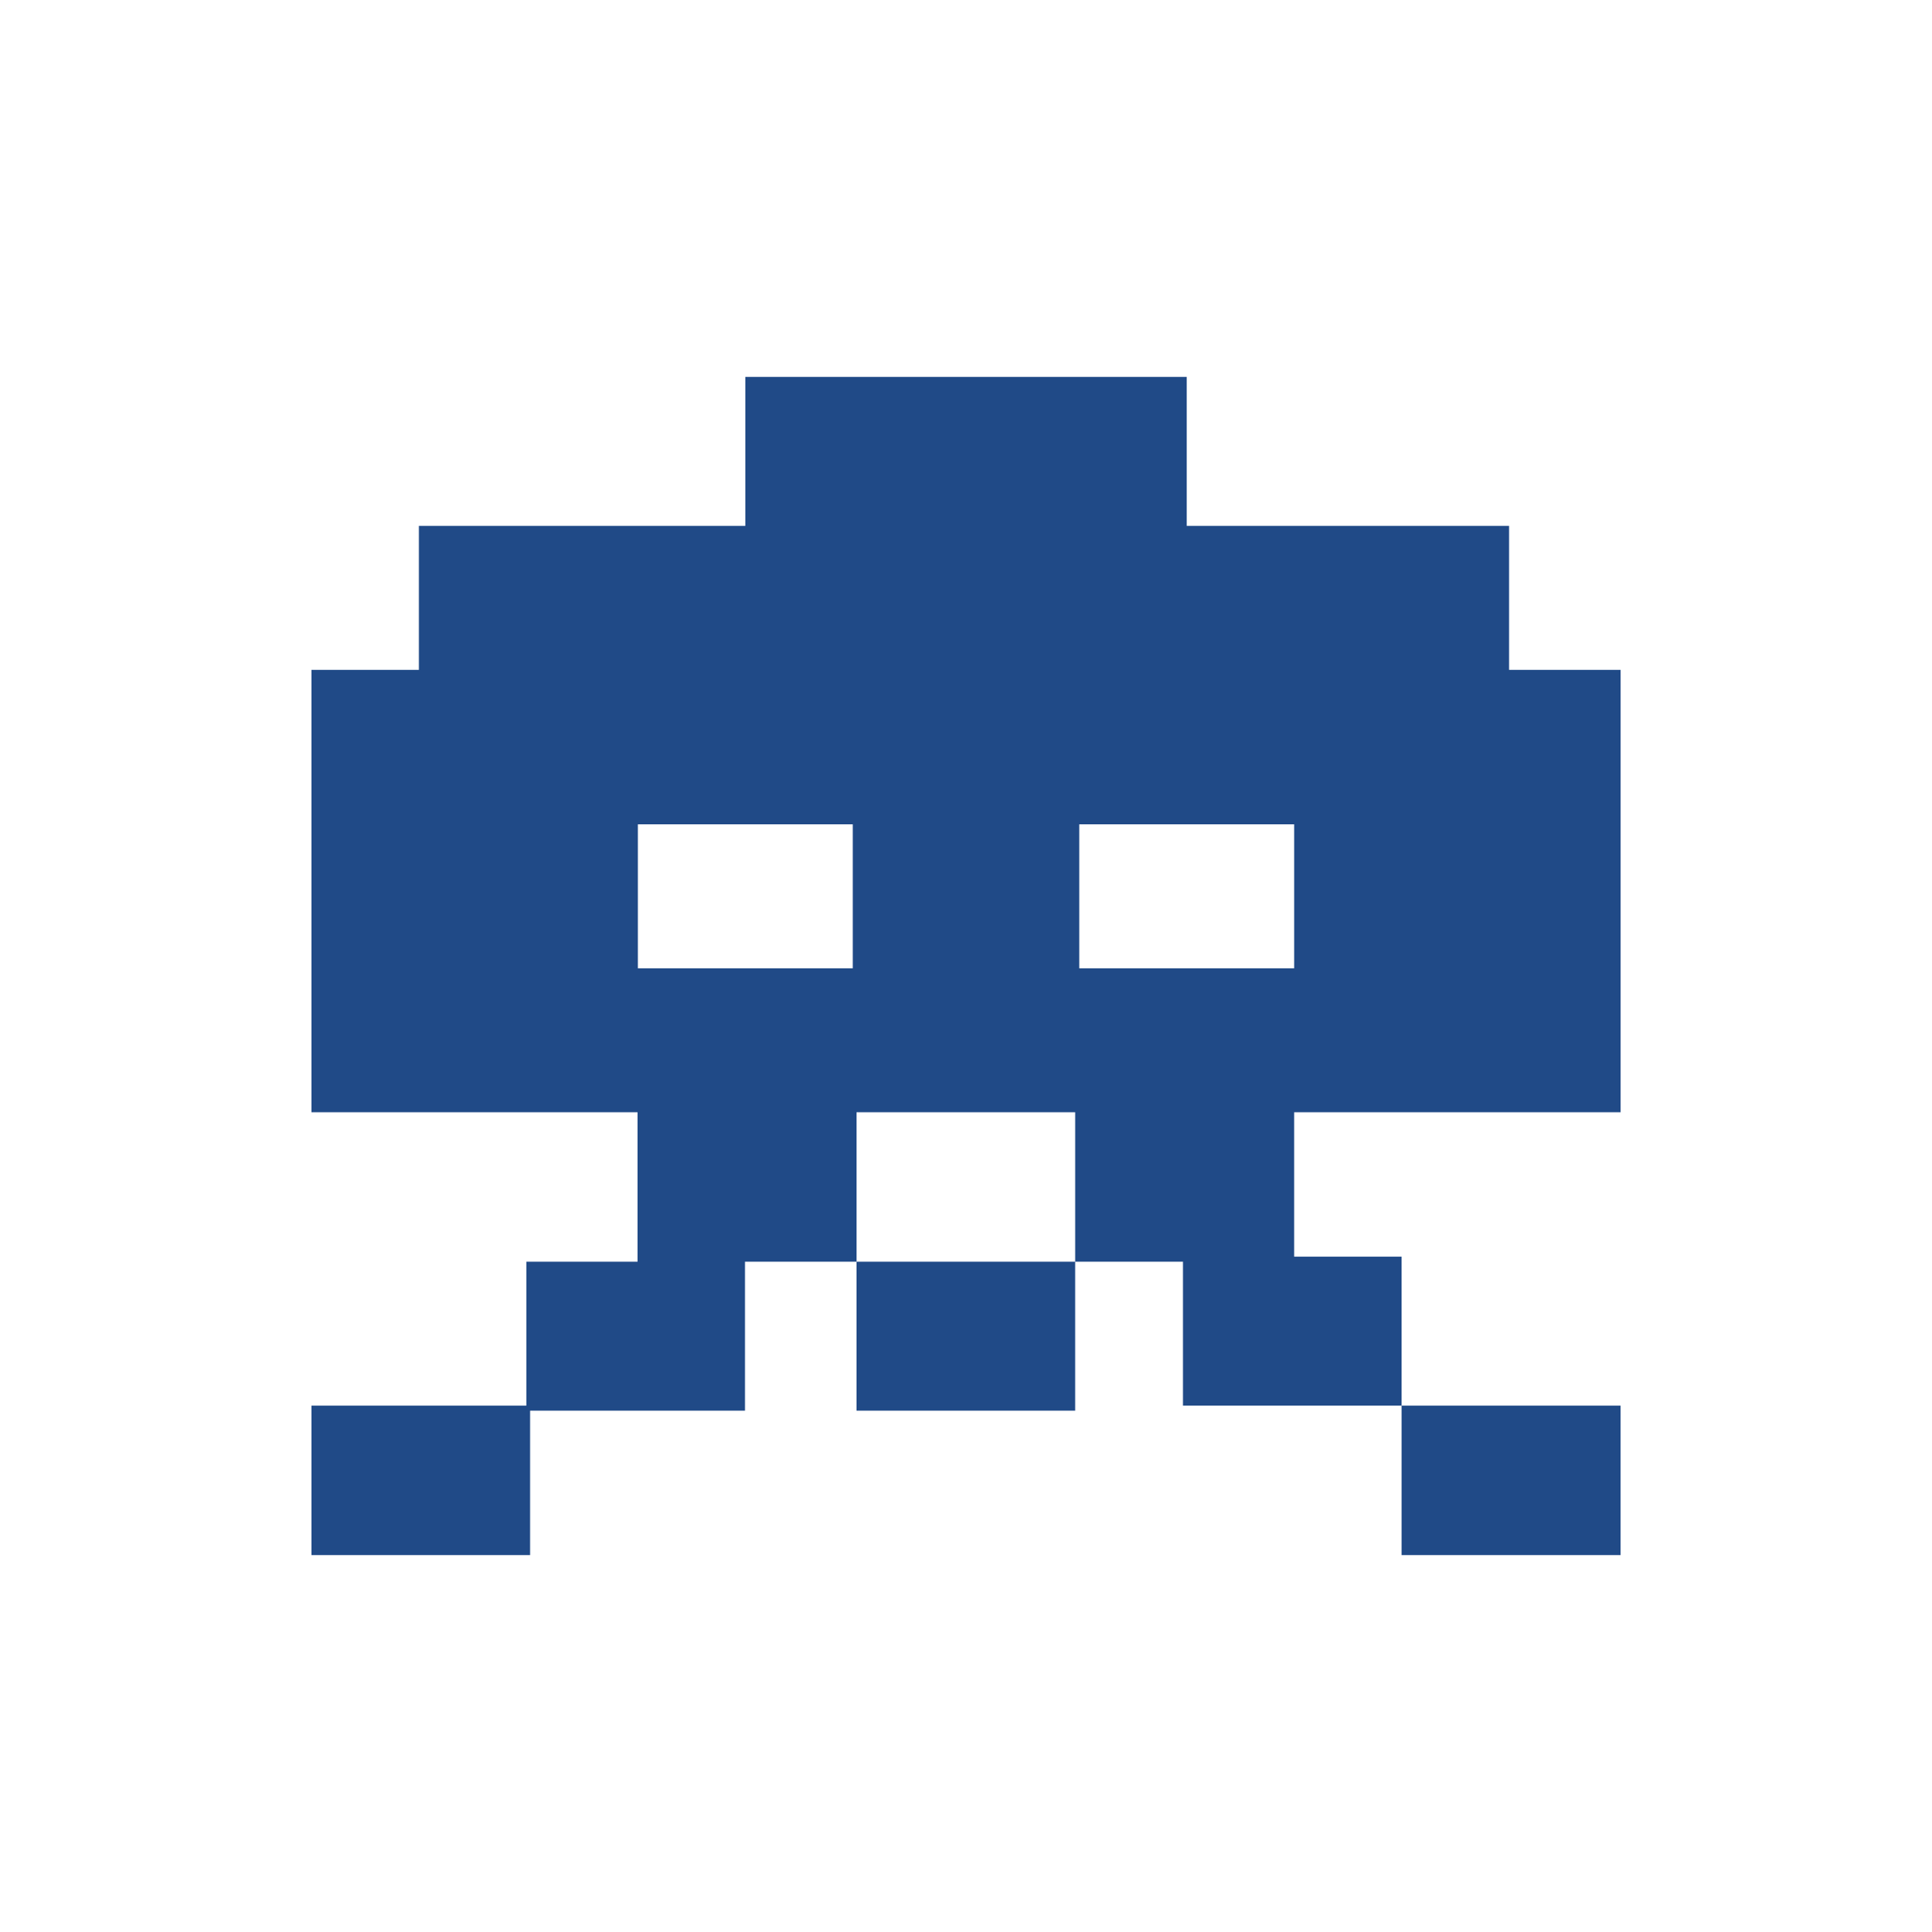 Space invaders alien png. Clipart big image